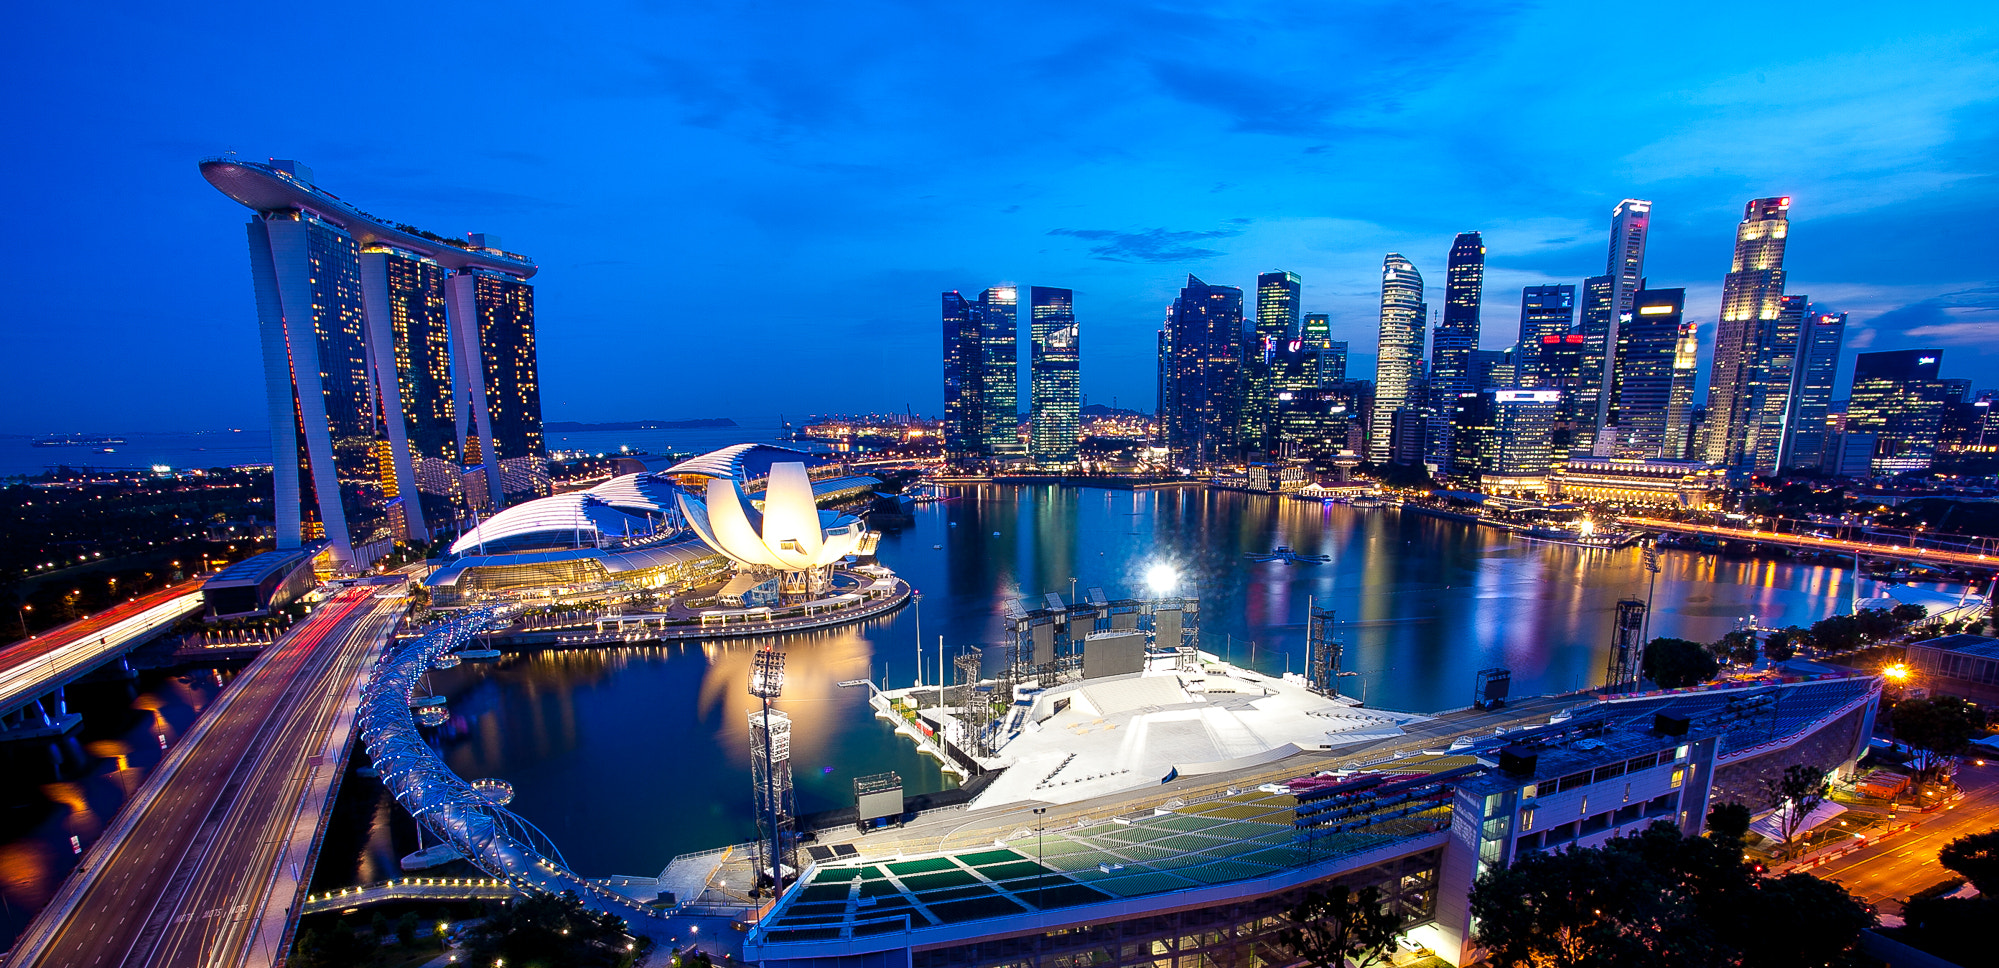 Photograph Singapore by Meng To on 500px